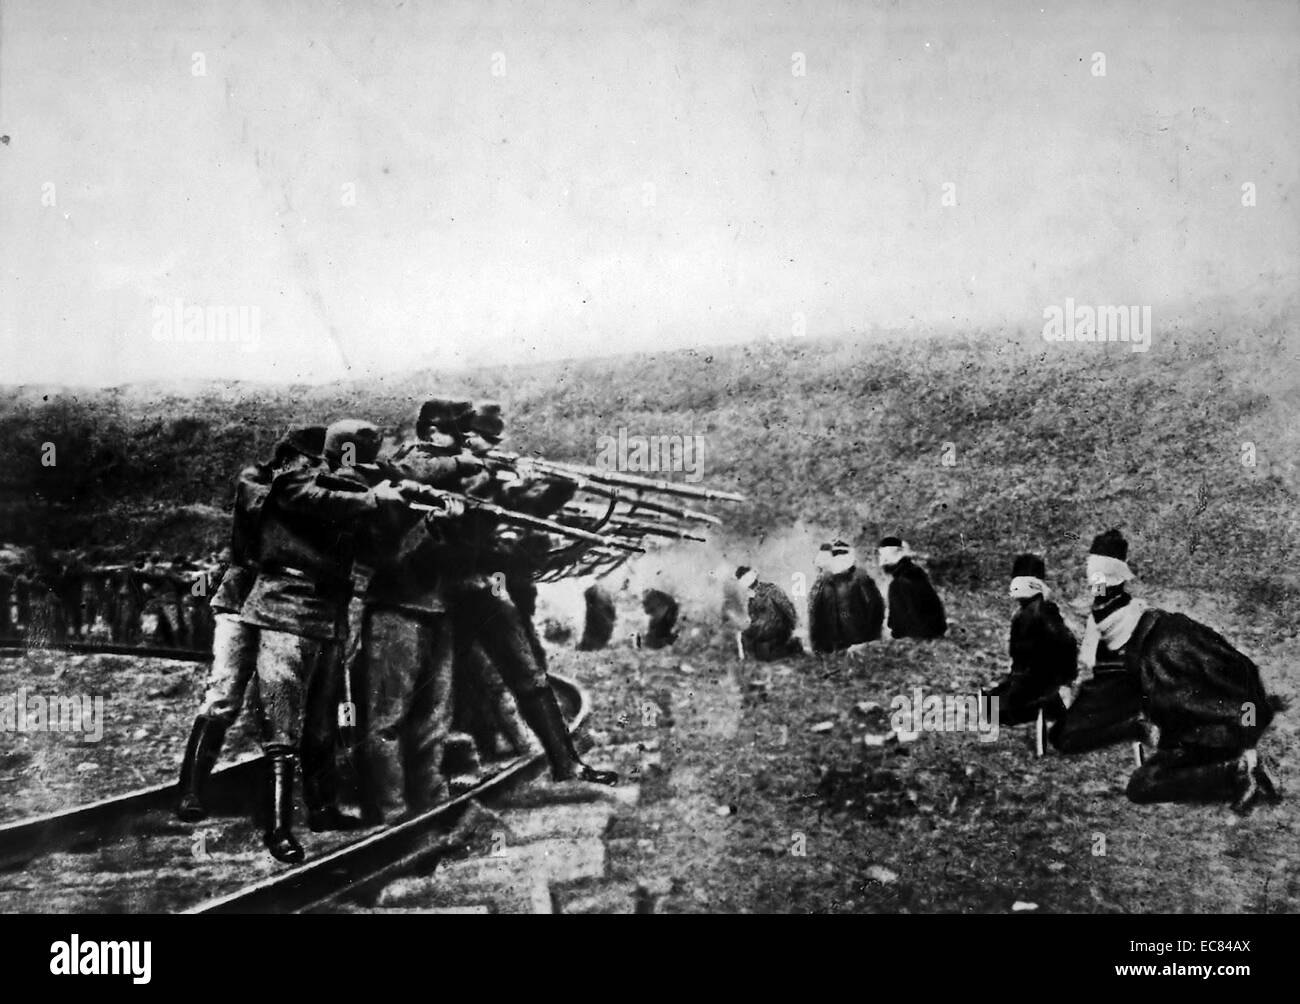 Austrian troops executing Serbs in world war one 1914 - Stock Image